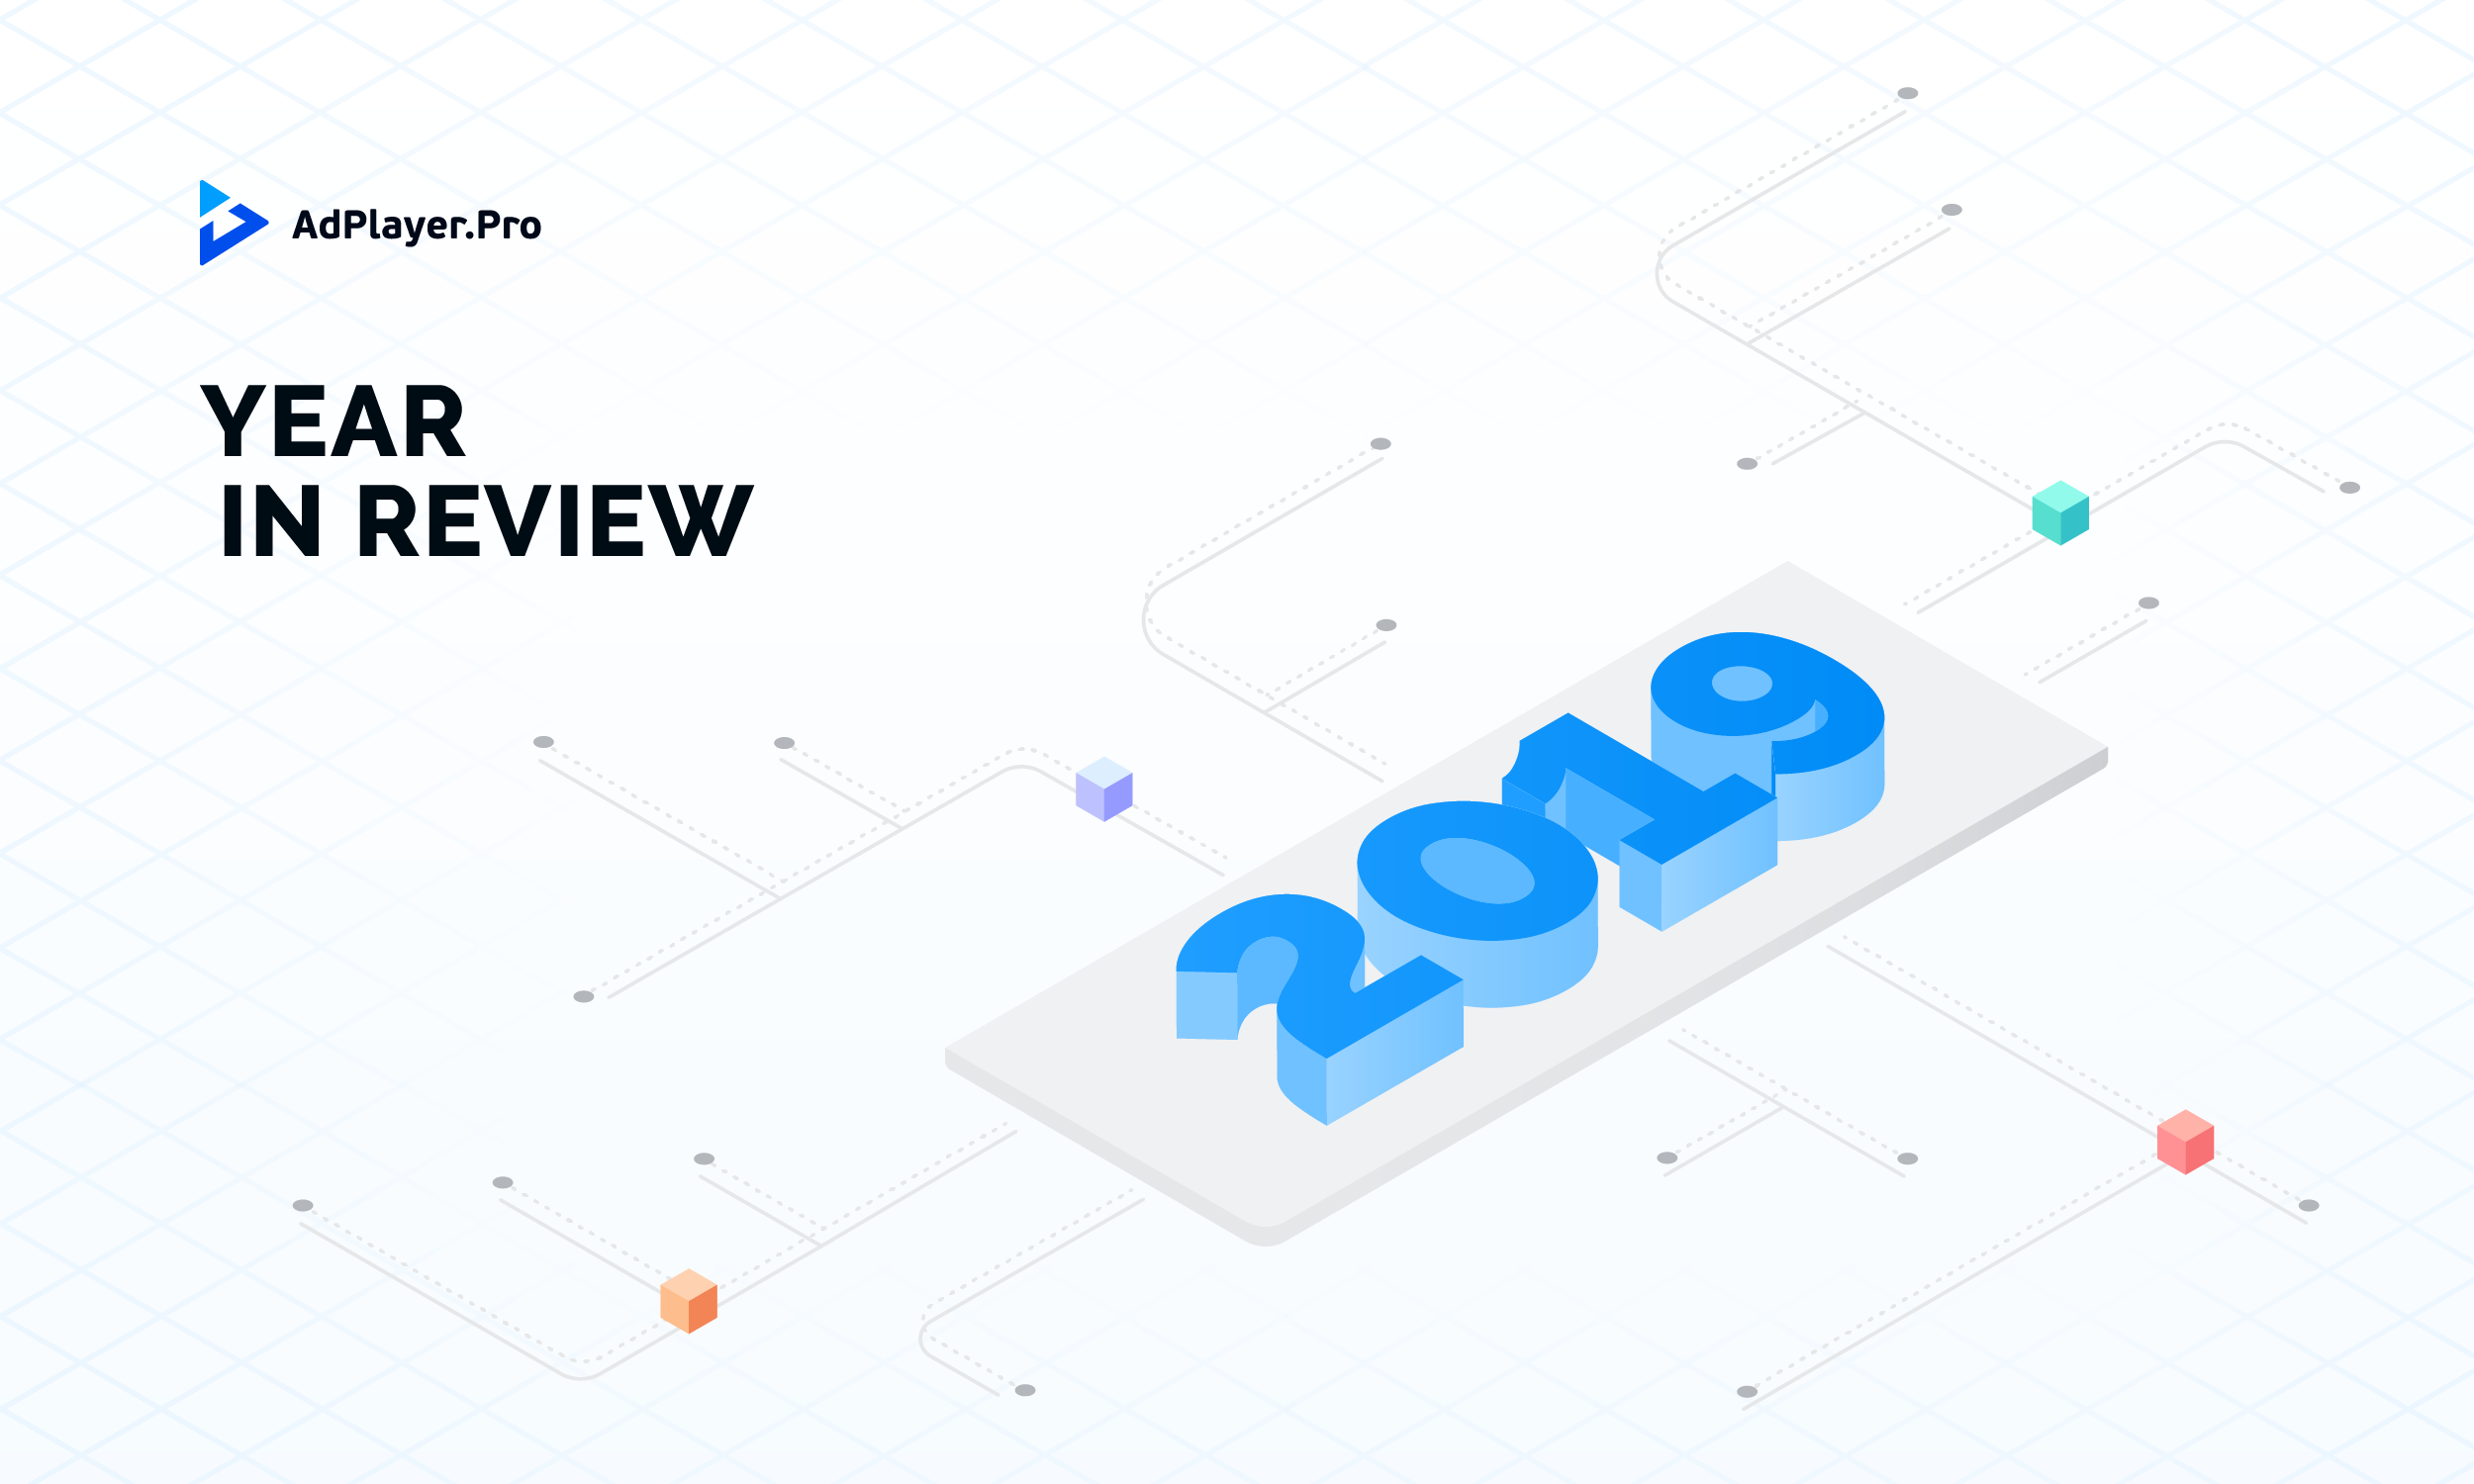 [INFOGRAPHIC] AdPlayer.Pro: 2019 in Review